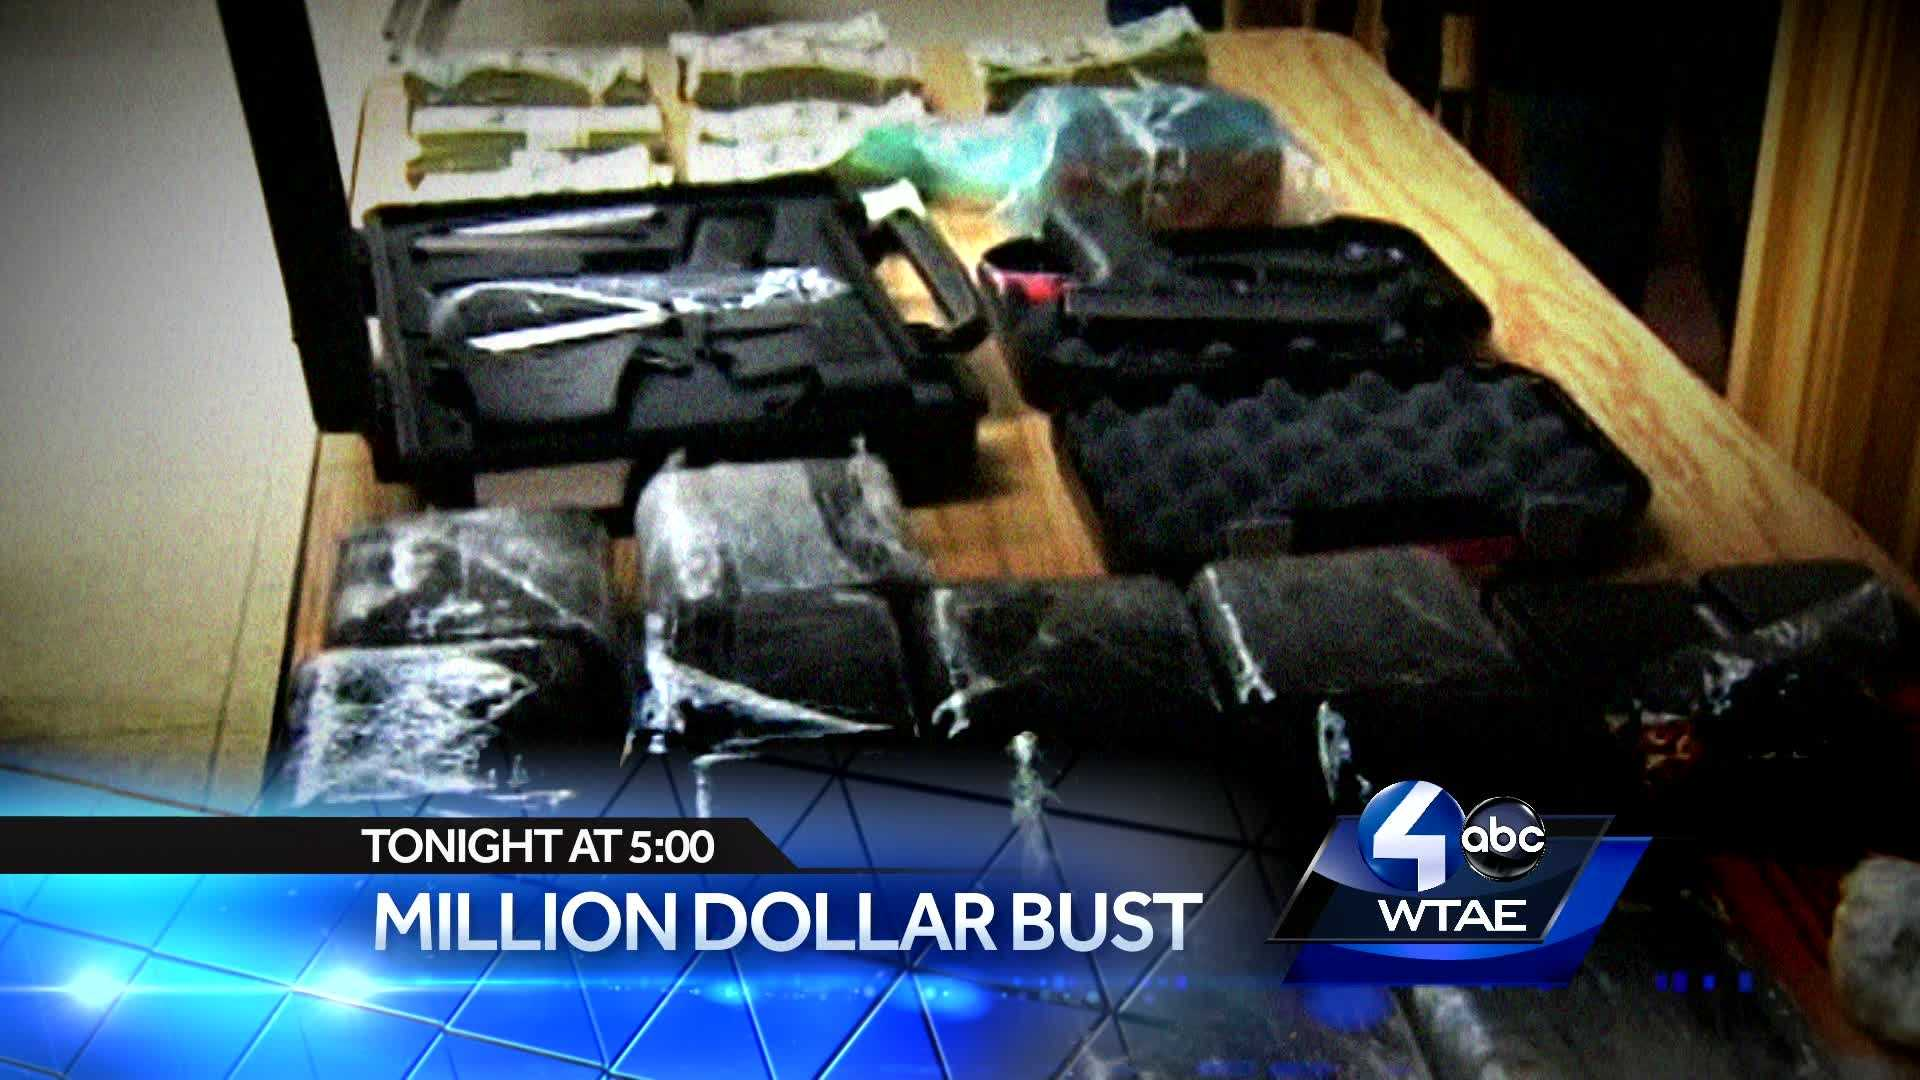 Multi-Million Dollar Cocaine Bust. The escalating drug problem in our Eastern Suburbs. Why narcotics traffic has increased in that area.Plus...Pittsburgh Marathon Financial Concerns. How the Boston Attacks are impacting the bottom line.